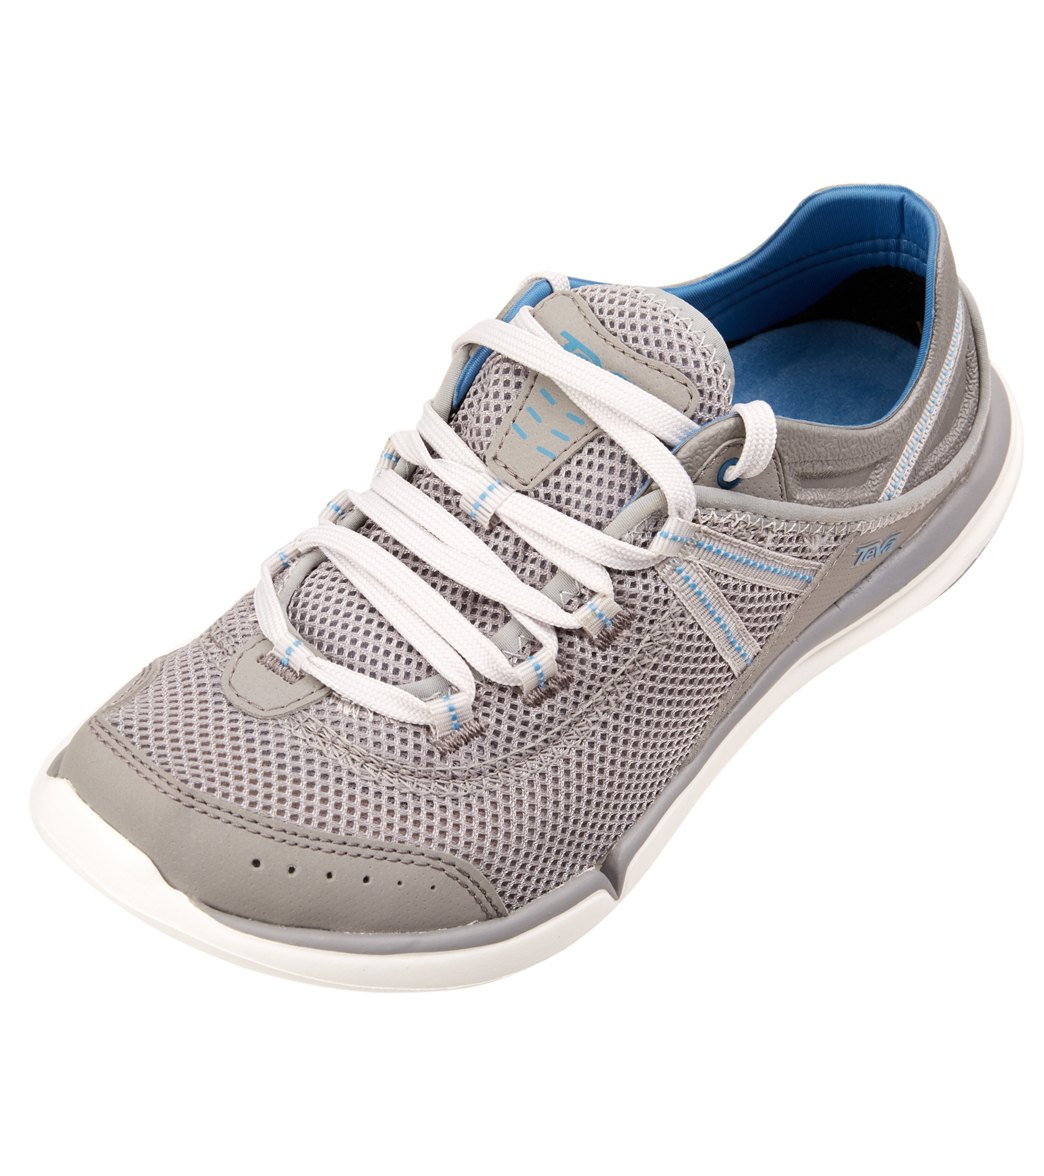 b7cbc5efe05 Teva Women's Evo Water Shoe at SwimOutlet.com - Free Shipping